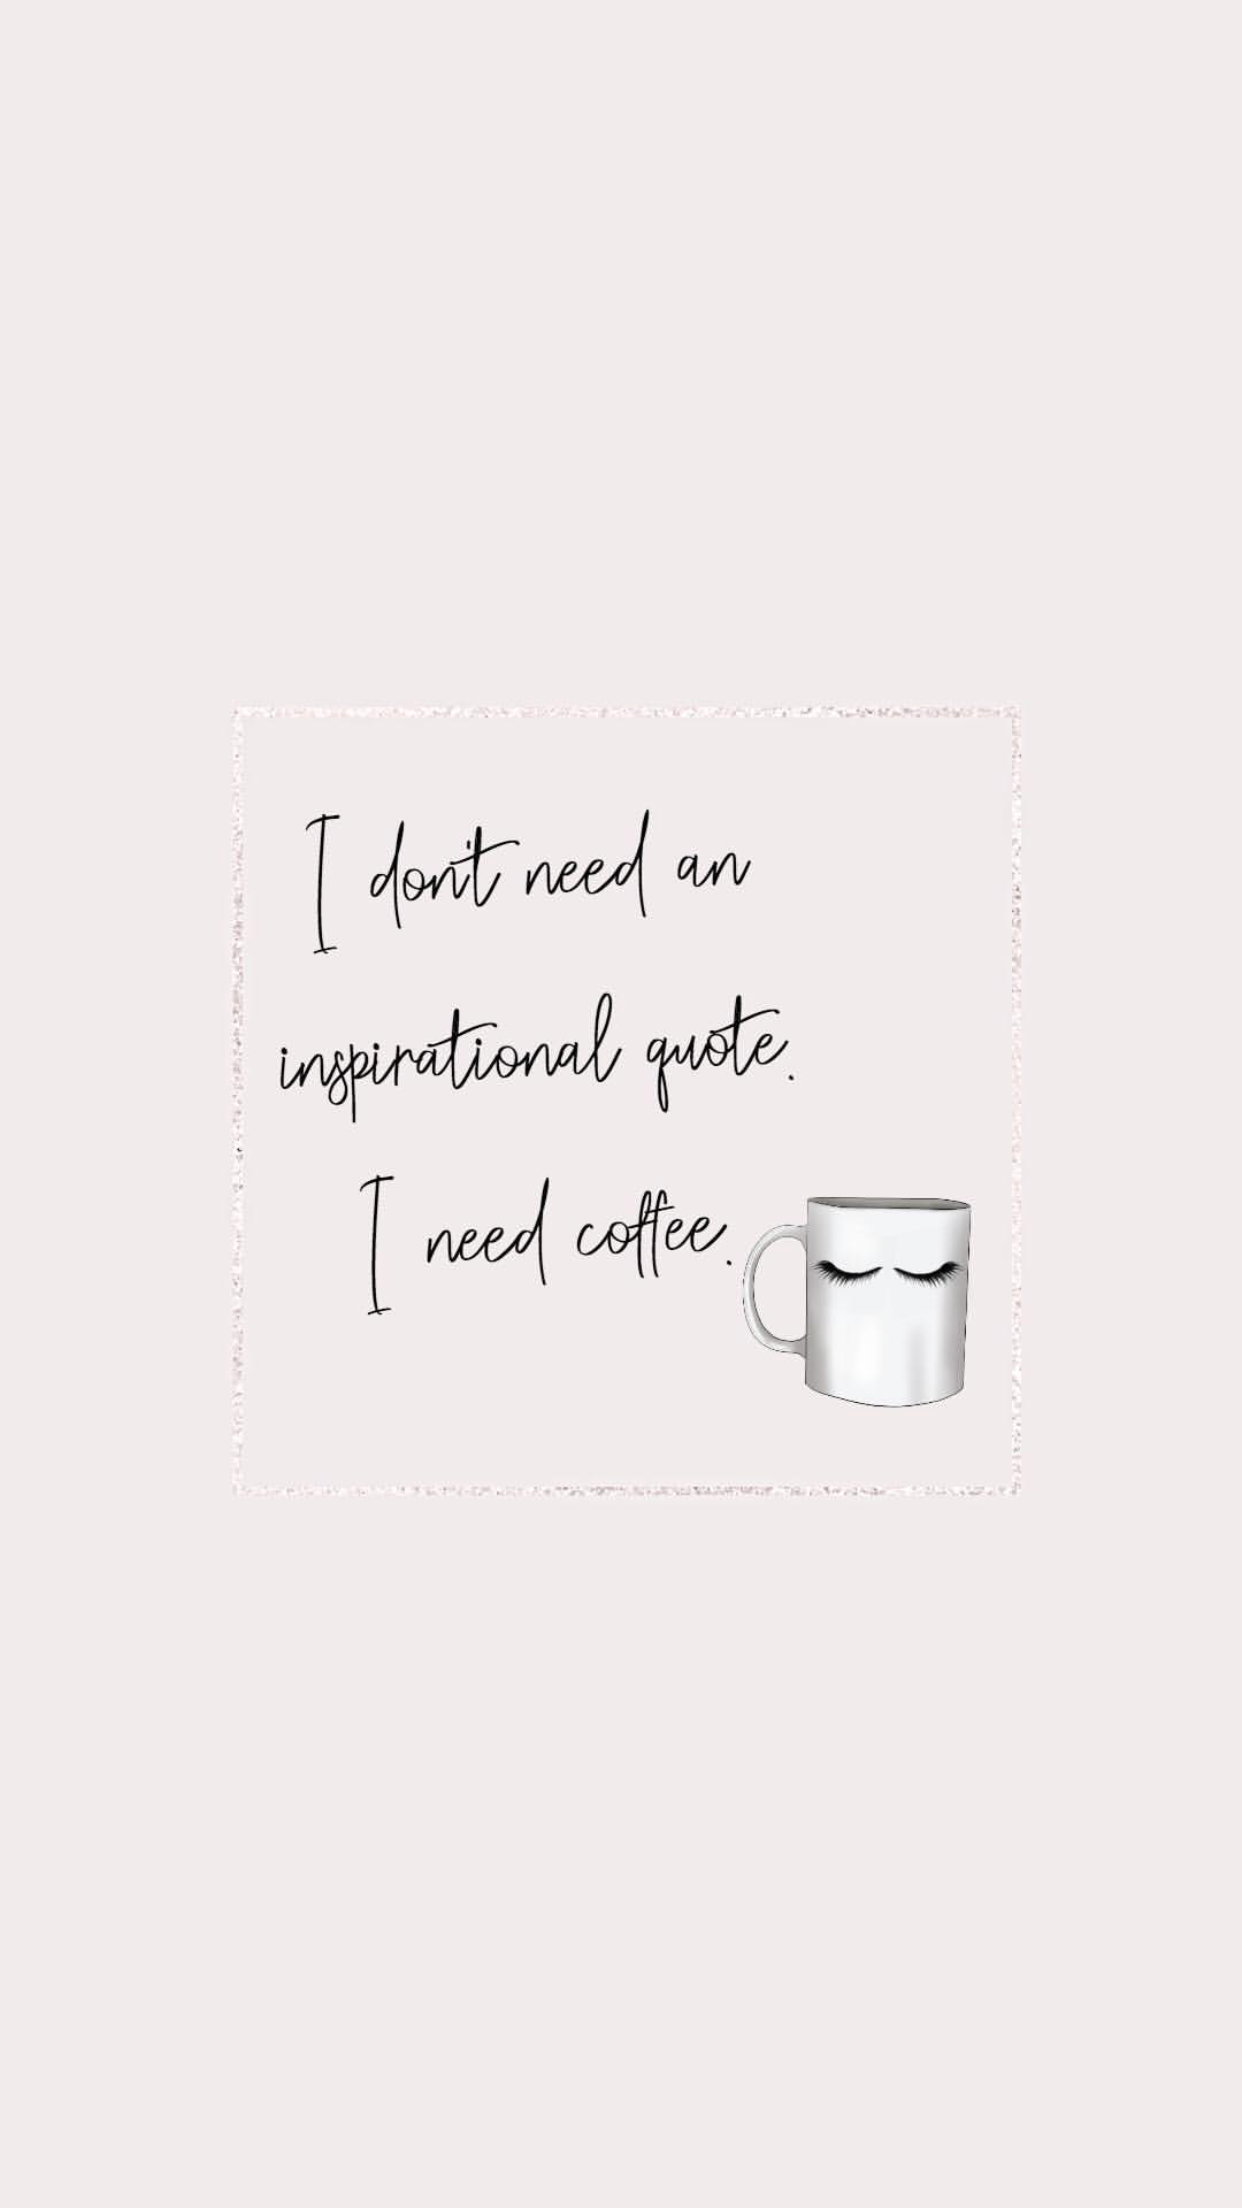 Hd Wallpapers Coffee Quotes Png Free 4 Wallpaper